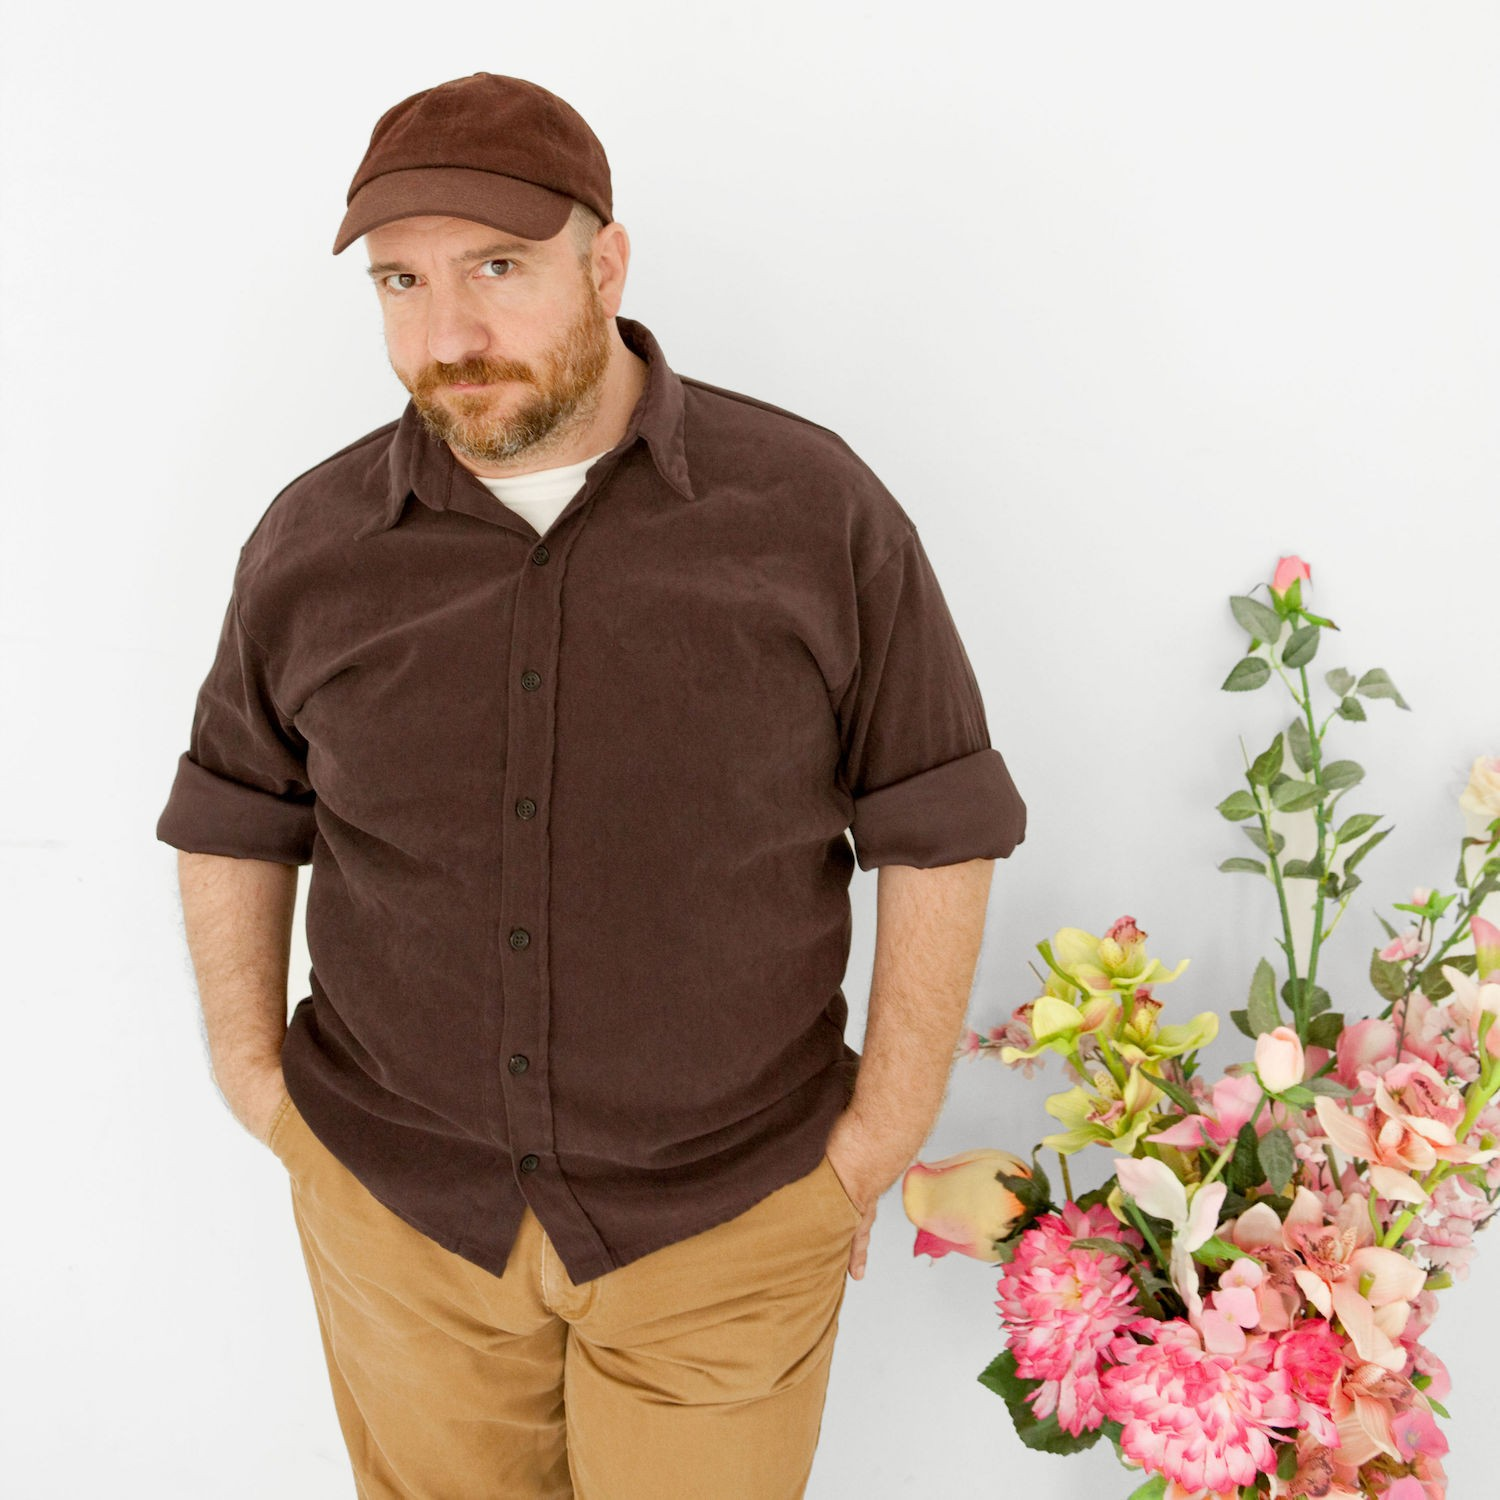 Stephin Merritt Albums From Worst To Best - Stereogum